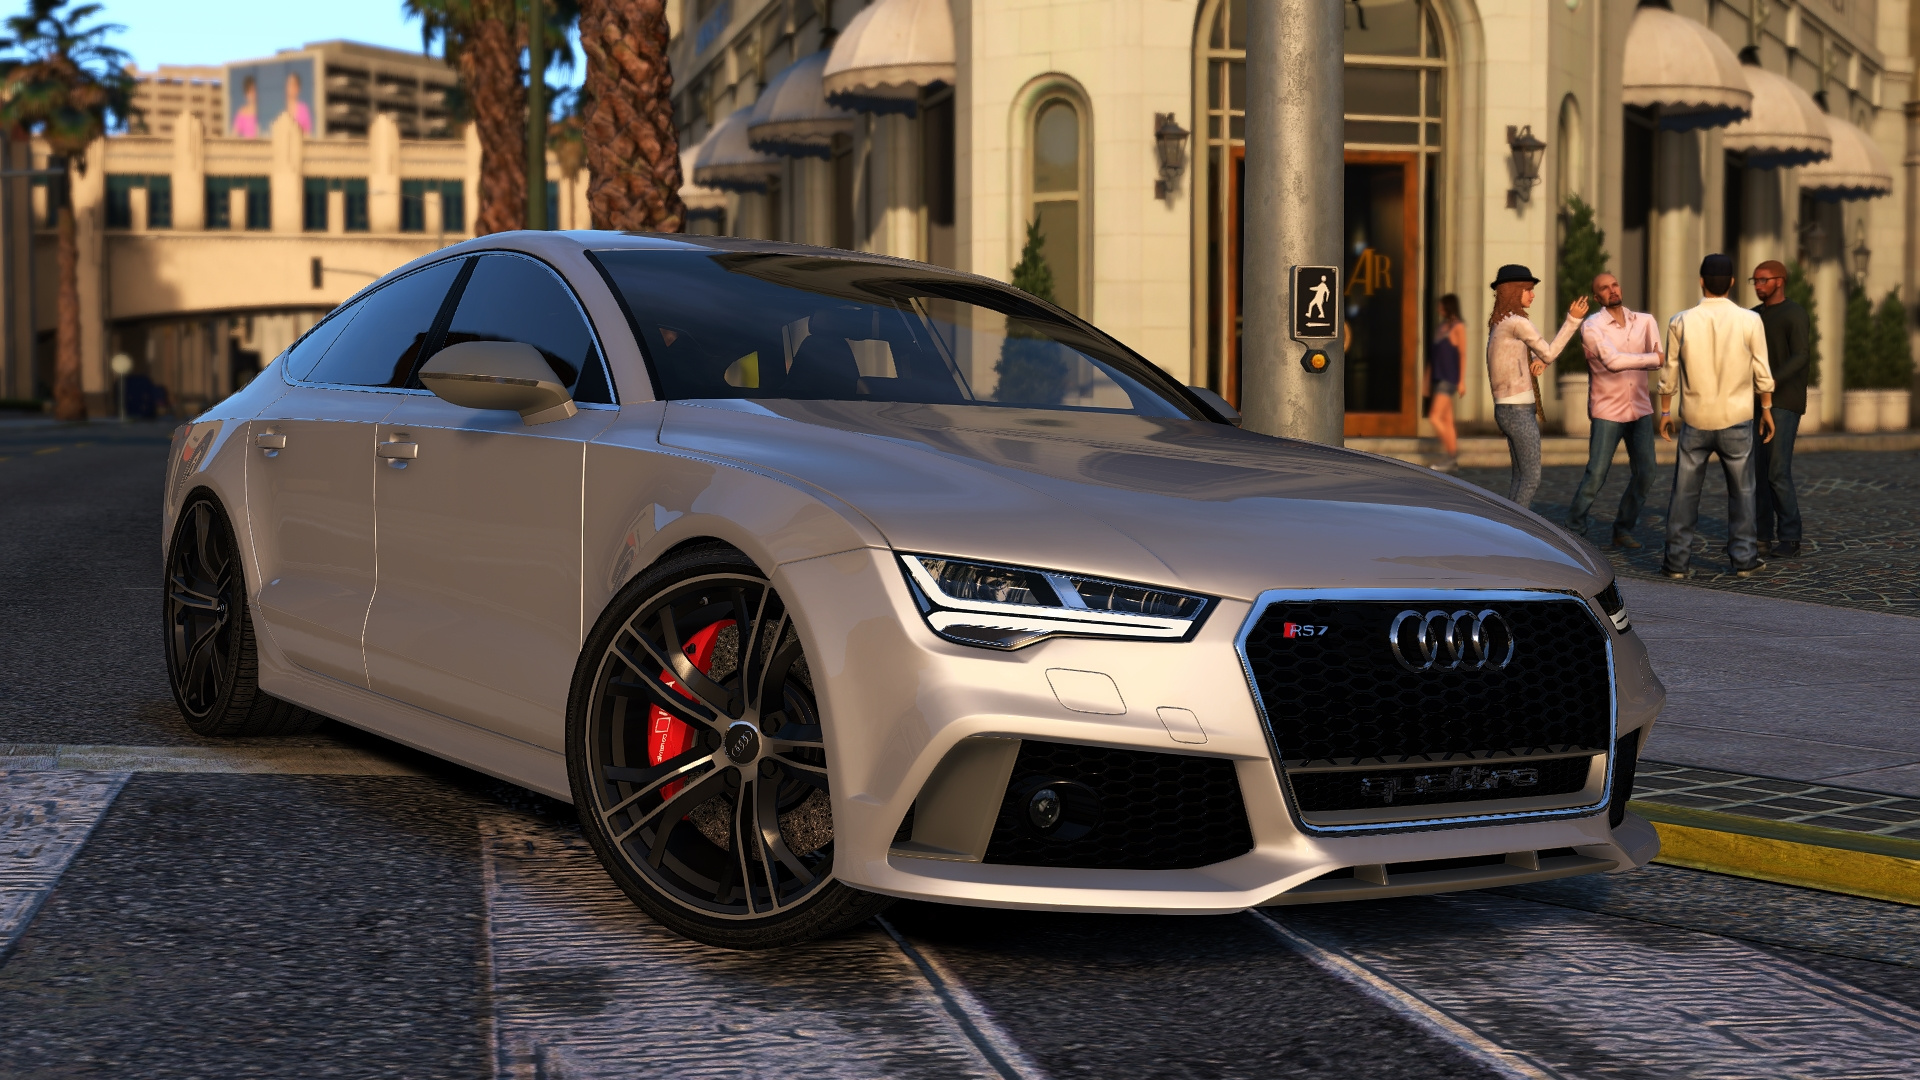 2015 Audi RS7 Sportback [Add-On / Replace] - GTA5-Mods.com